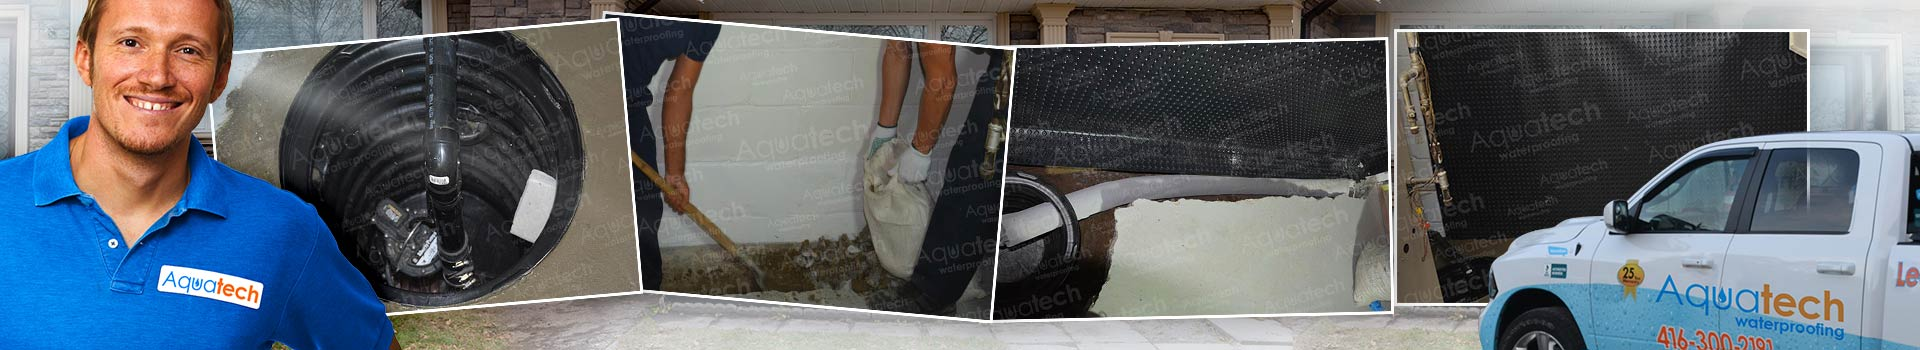 aquatech-basement-waterproofing-interior-waterproofing